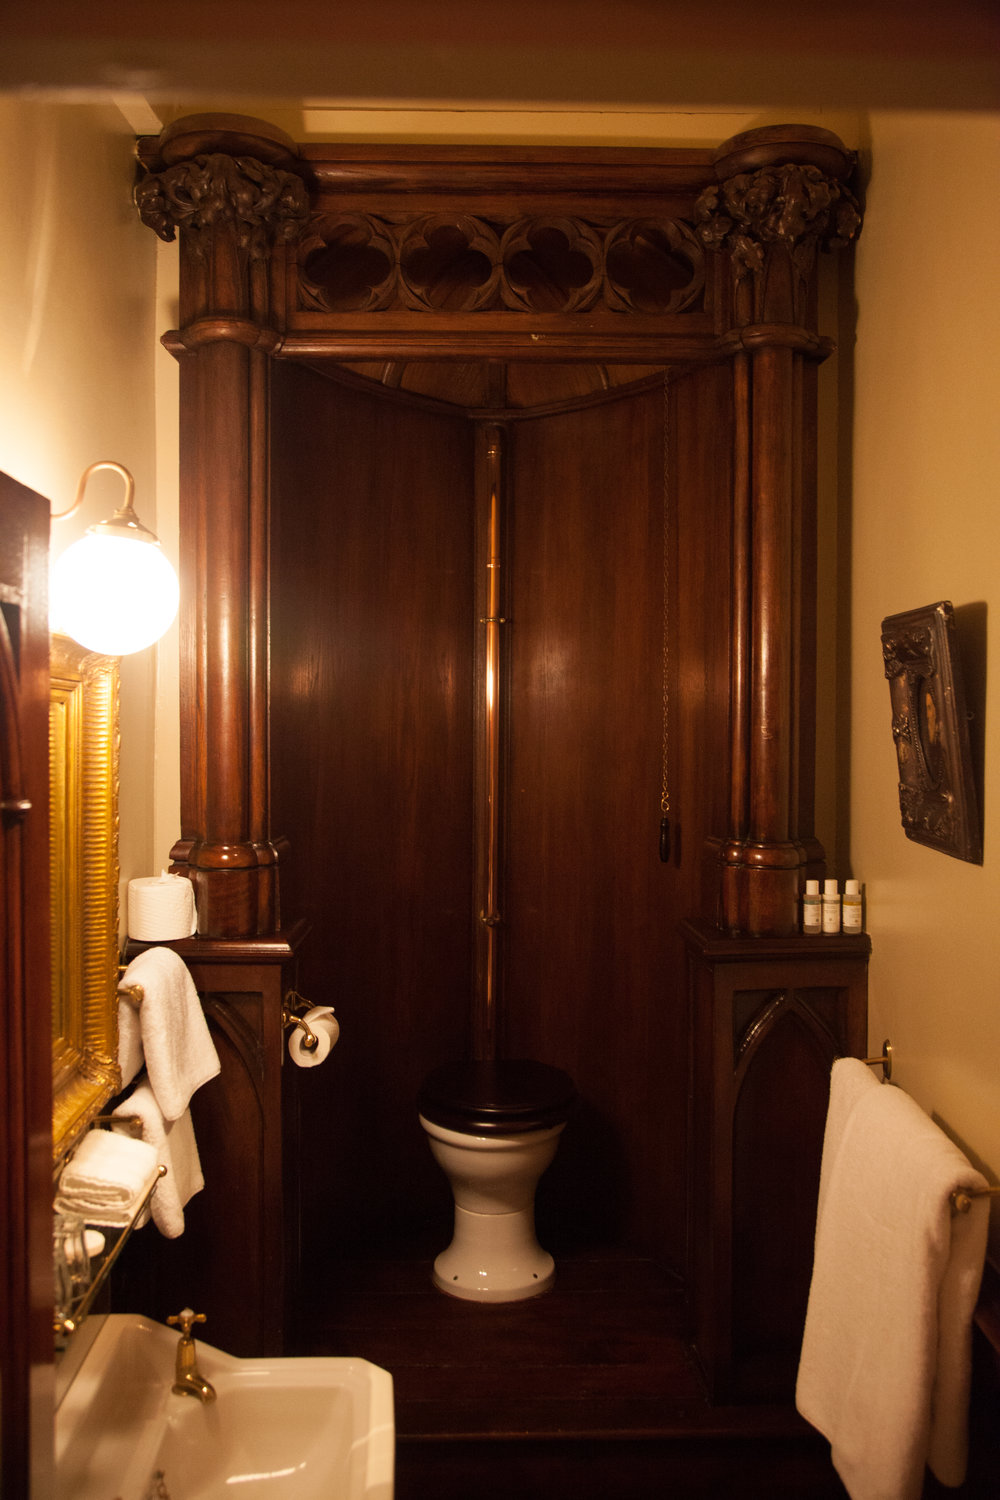 A heck of a toilet at The Rookery. (London, U.K.)